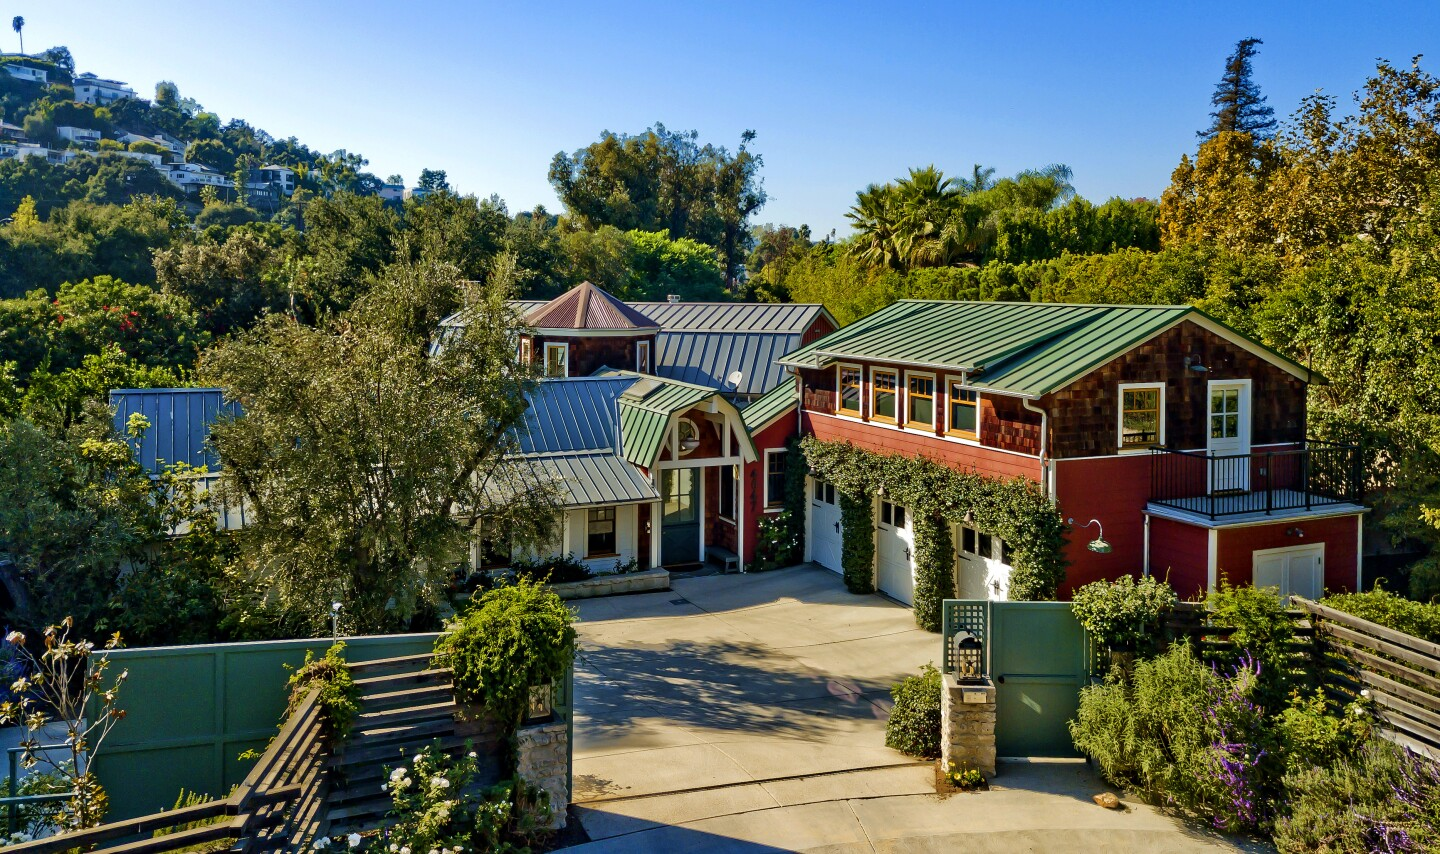 Home of the Week | A little bit country in Studio City